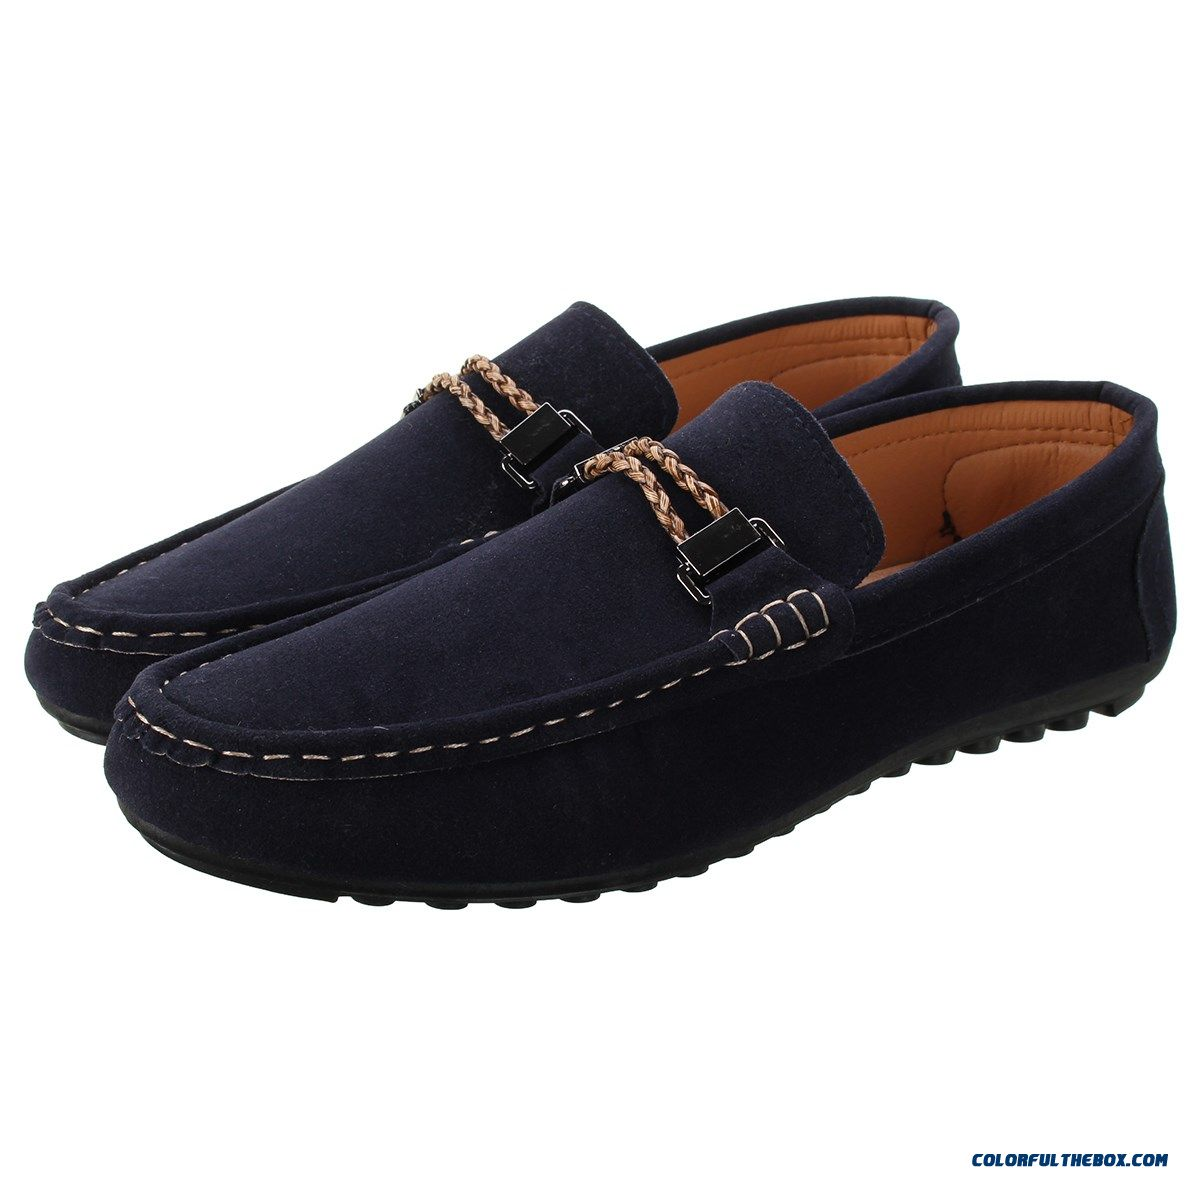 Men Casual Flat Heels Outdoor Leisure Shoes, Loafers Driving Flats Men Shoes New Fashion Slip-on Man Male Flat Shoes